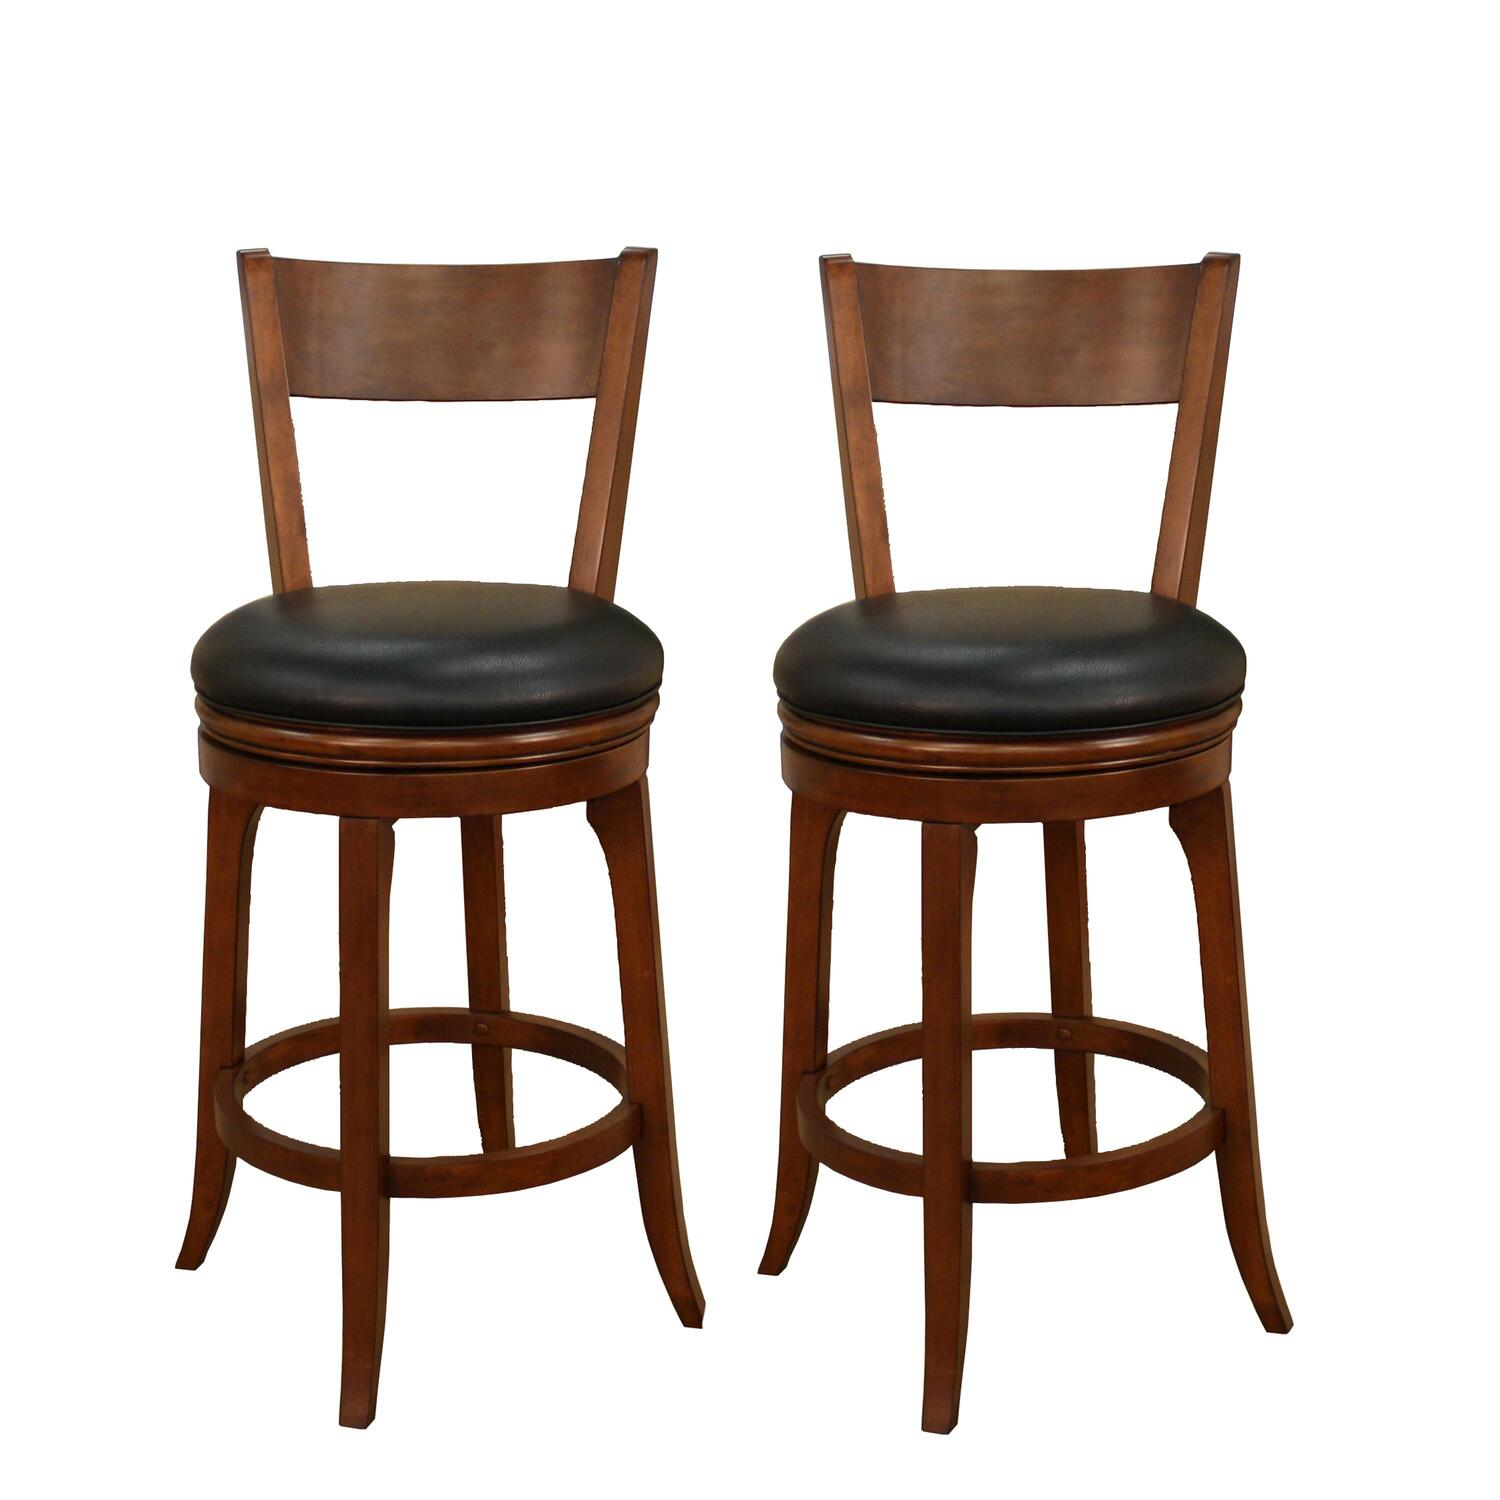 American Heritage Billiards Autumn Bar Stool by OJ  : 100646sdsetof2autumnbarstools from www.ojcommerce.com size 3000 x 3000 jpeg 328kB